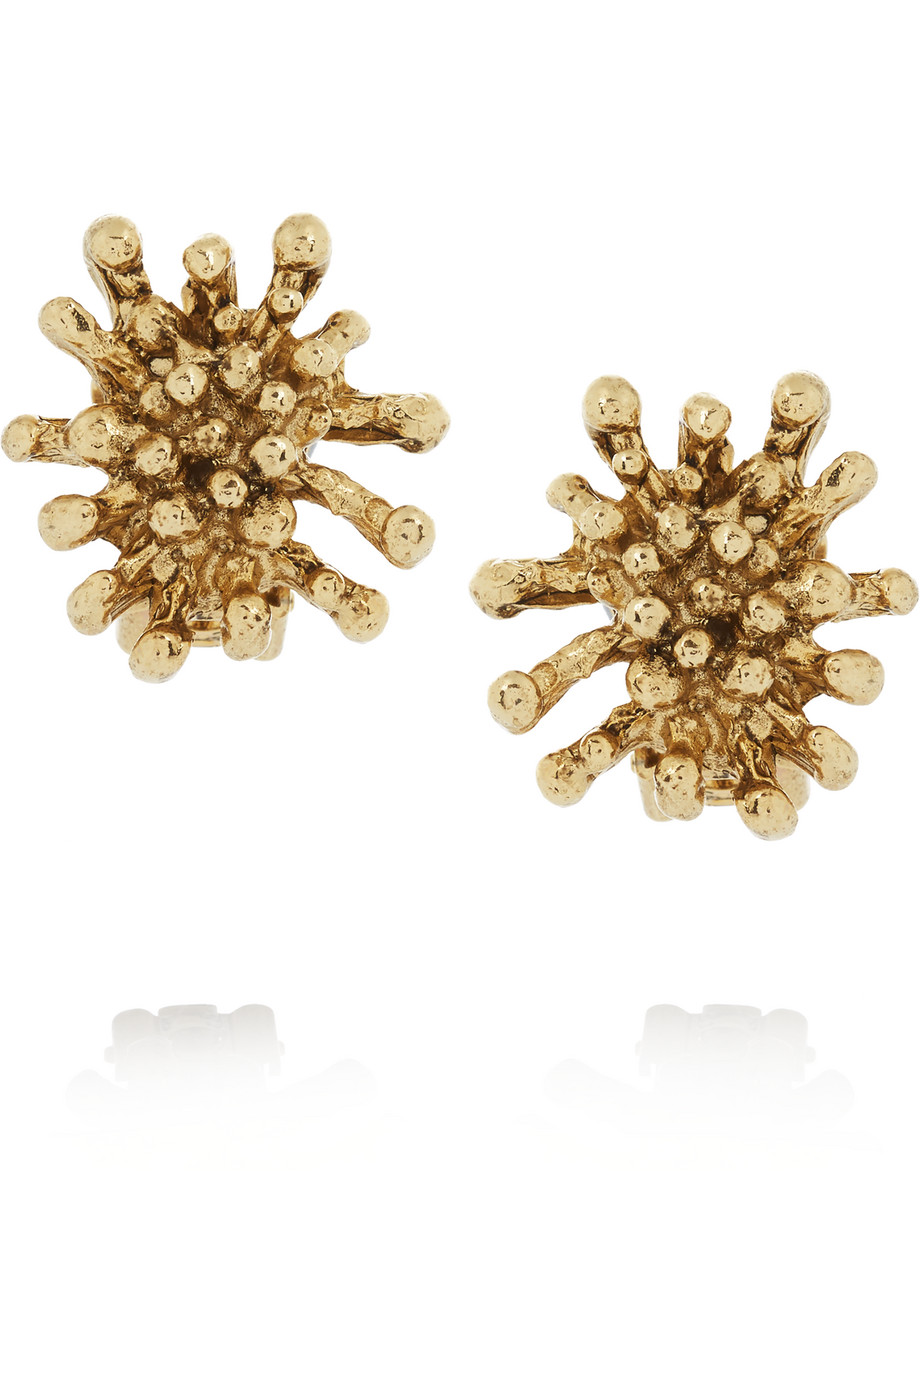 Oscar De La Renta Gold-Plated Clip Earrings, Women's